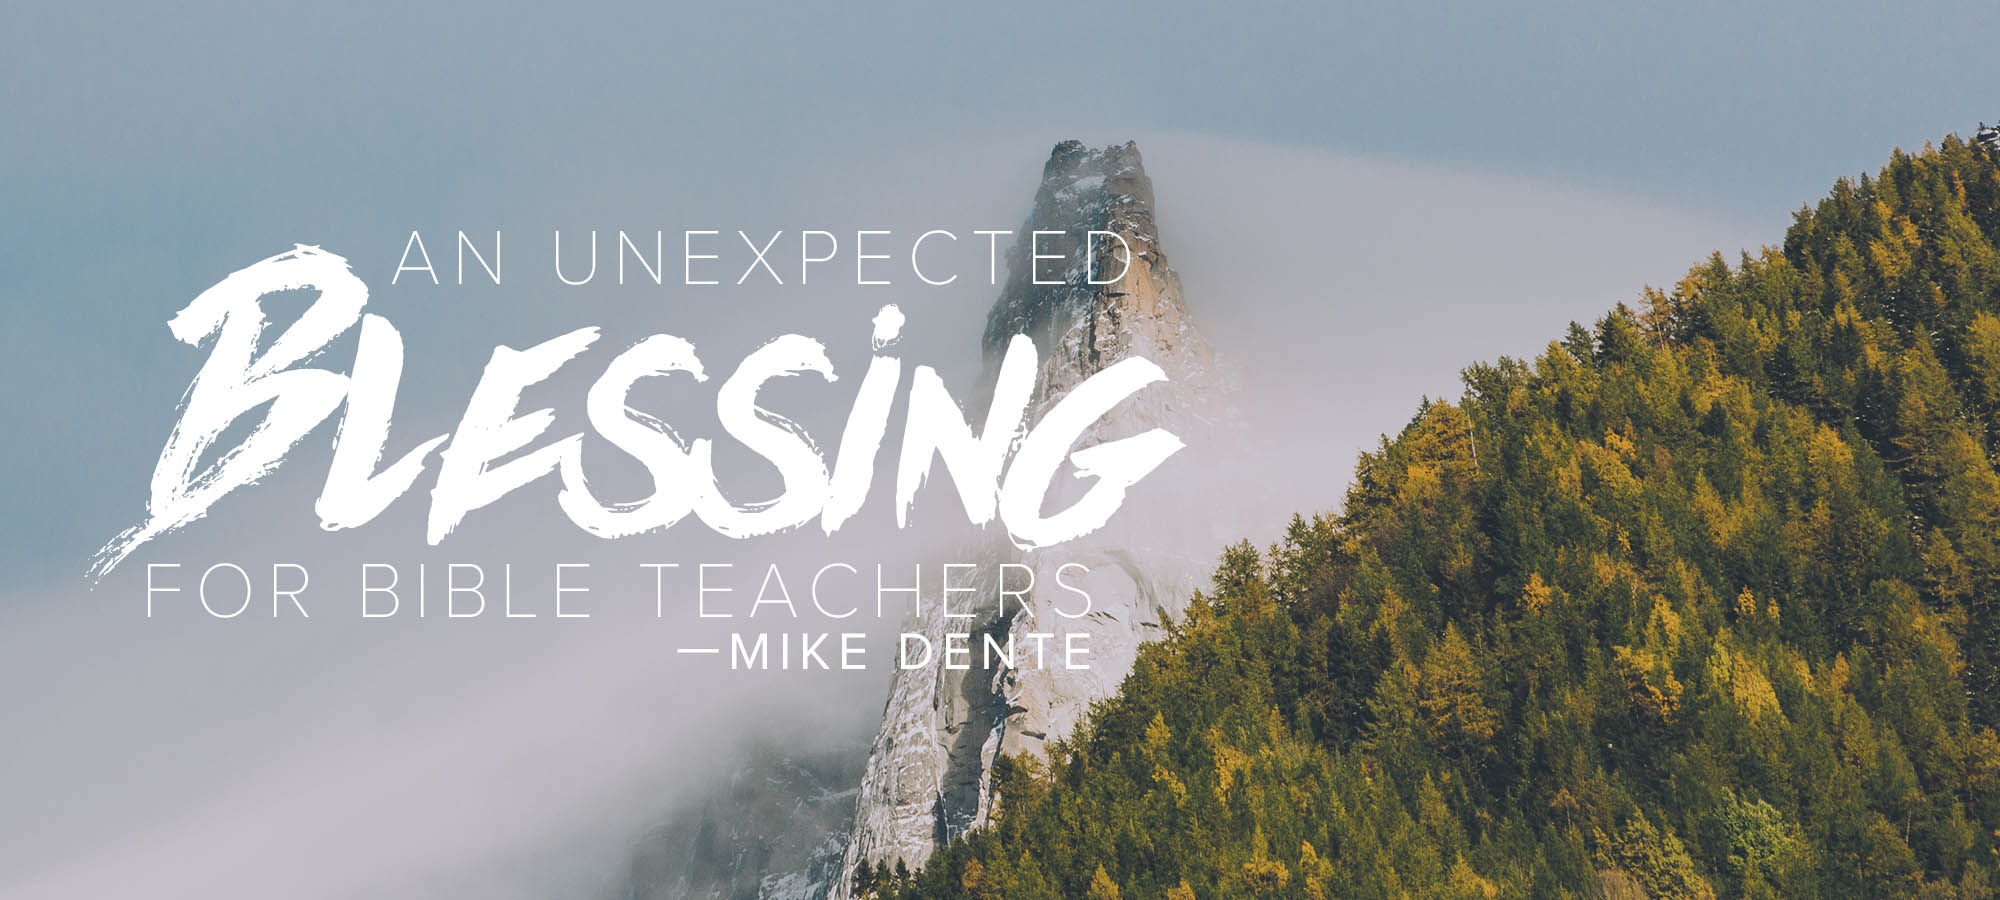 10.13-Mike-Dente-An-Unexpected-Blessing-for-Bible-Teachers_170811_062522.jpg